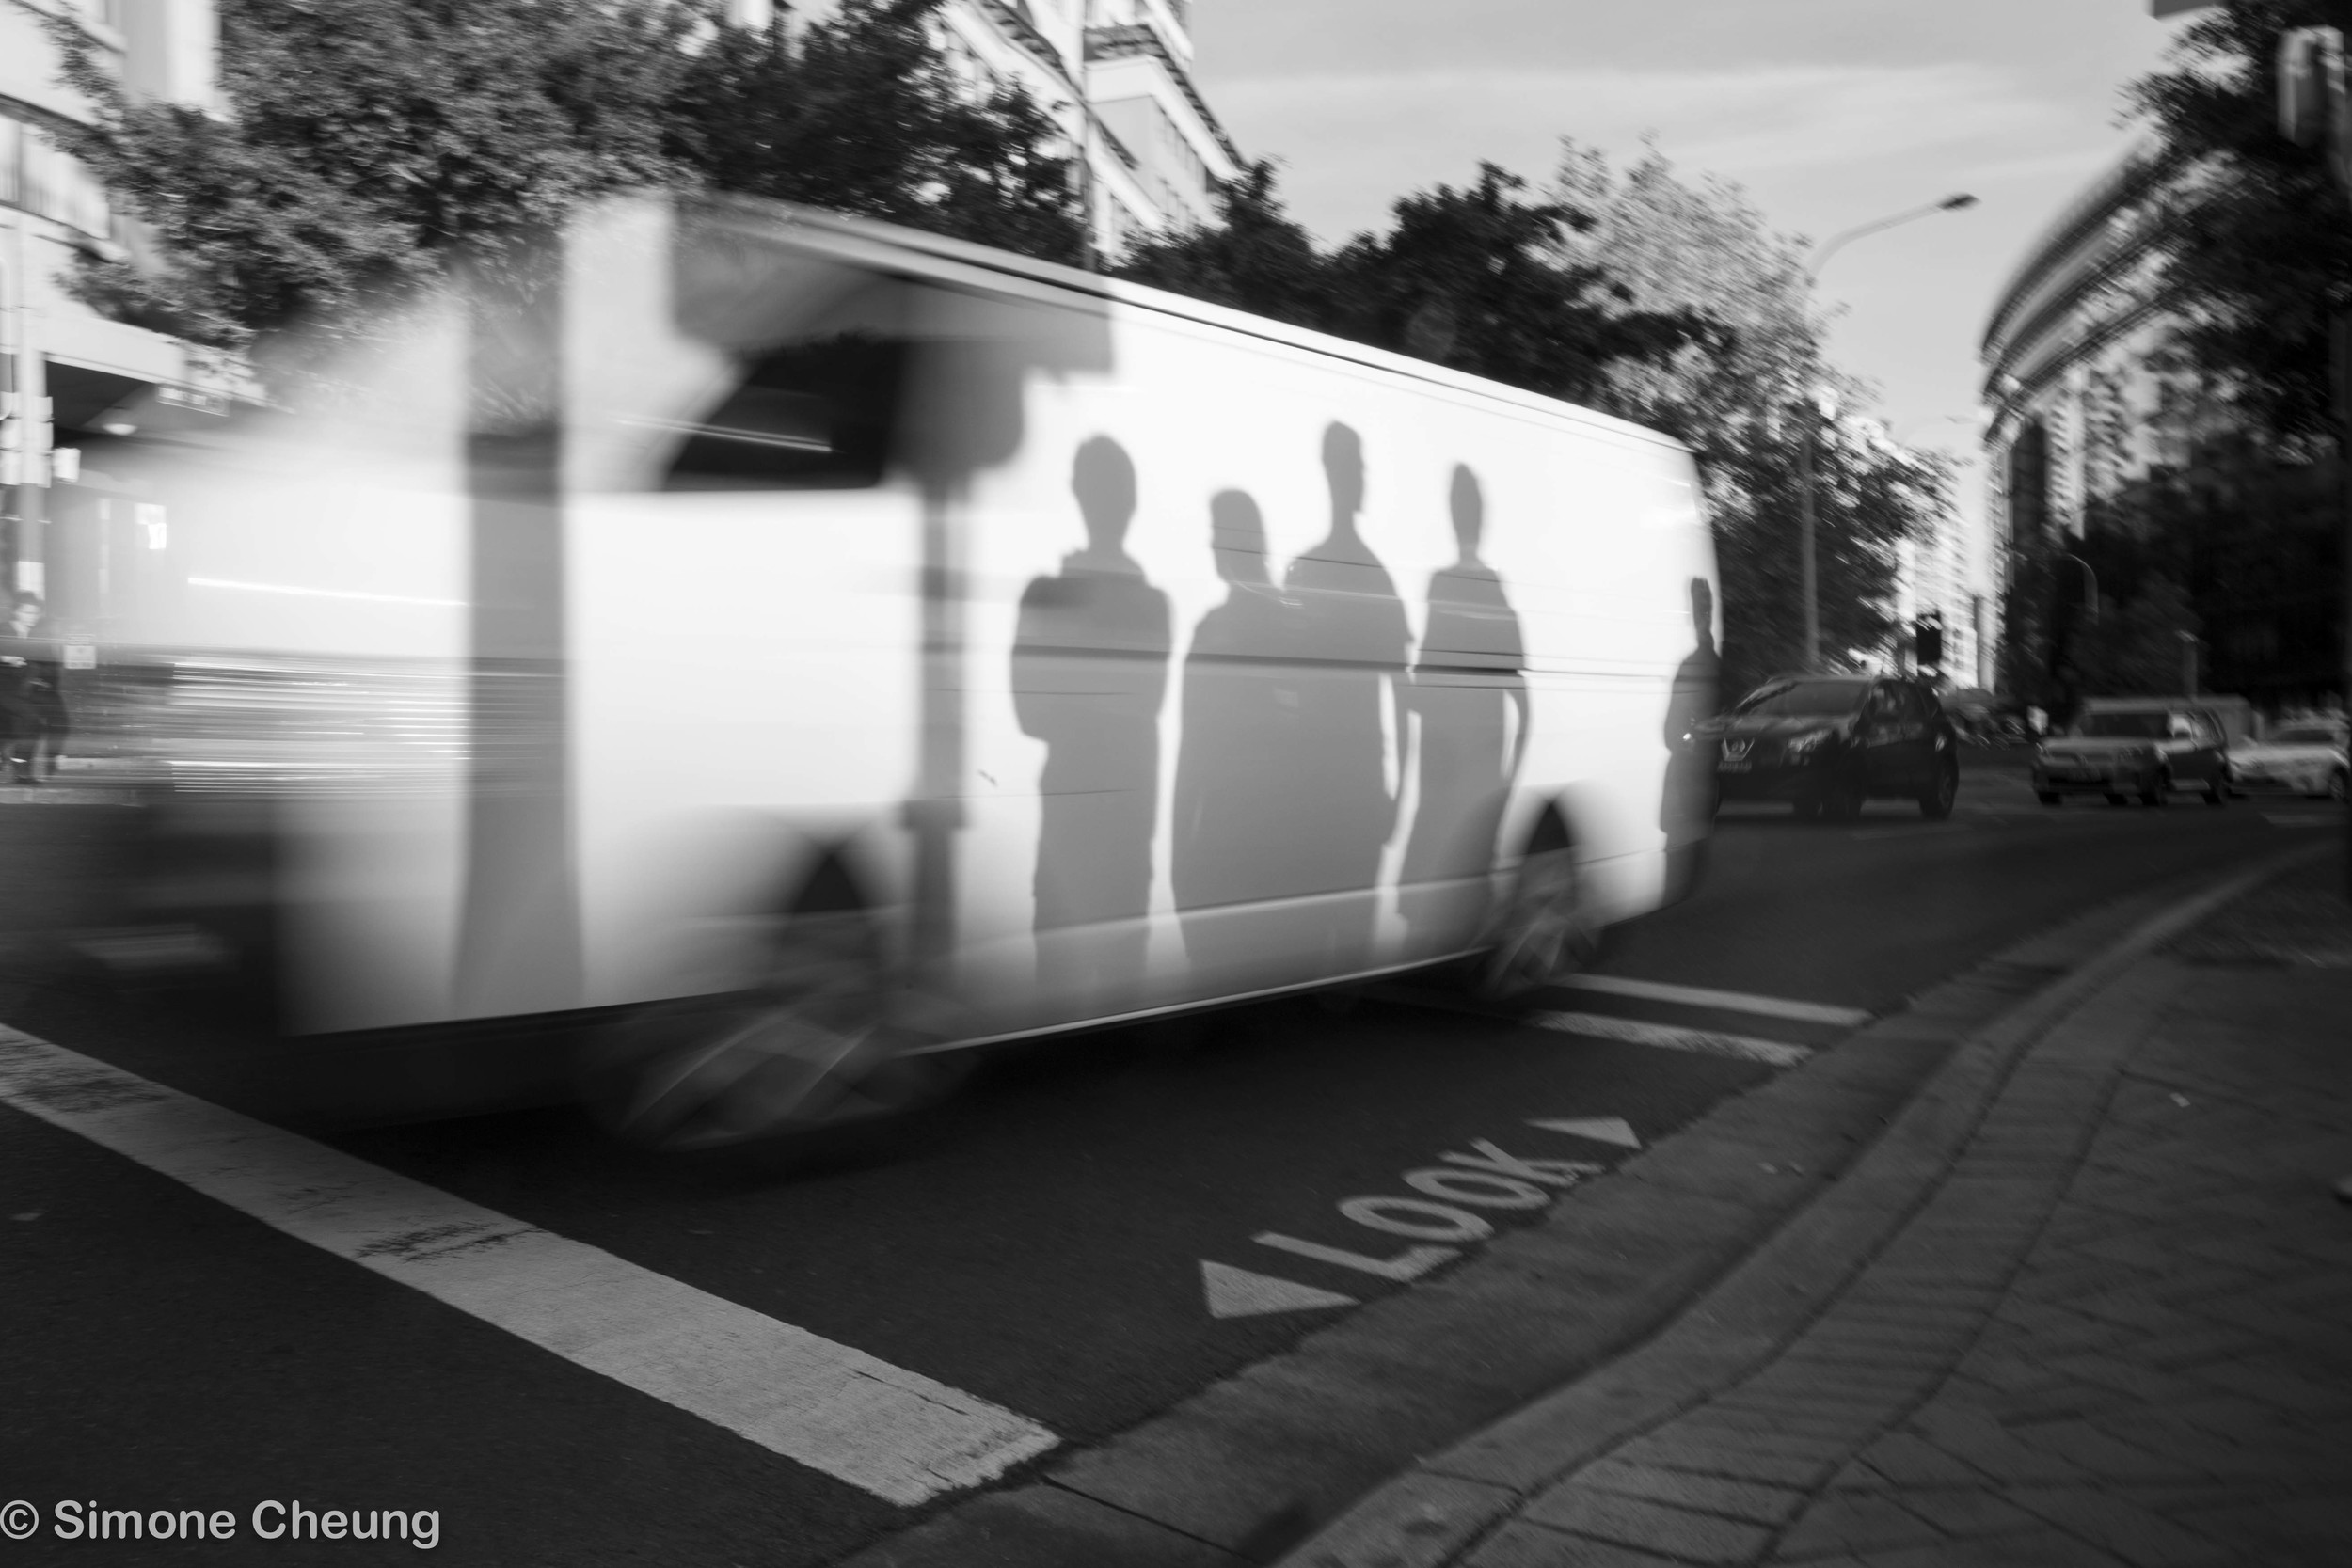 Inspired byHughes Léglise-Bataille of people waiting at a crossing